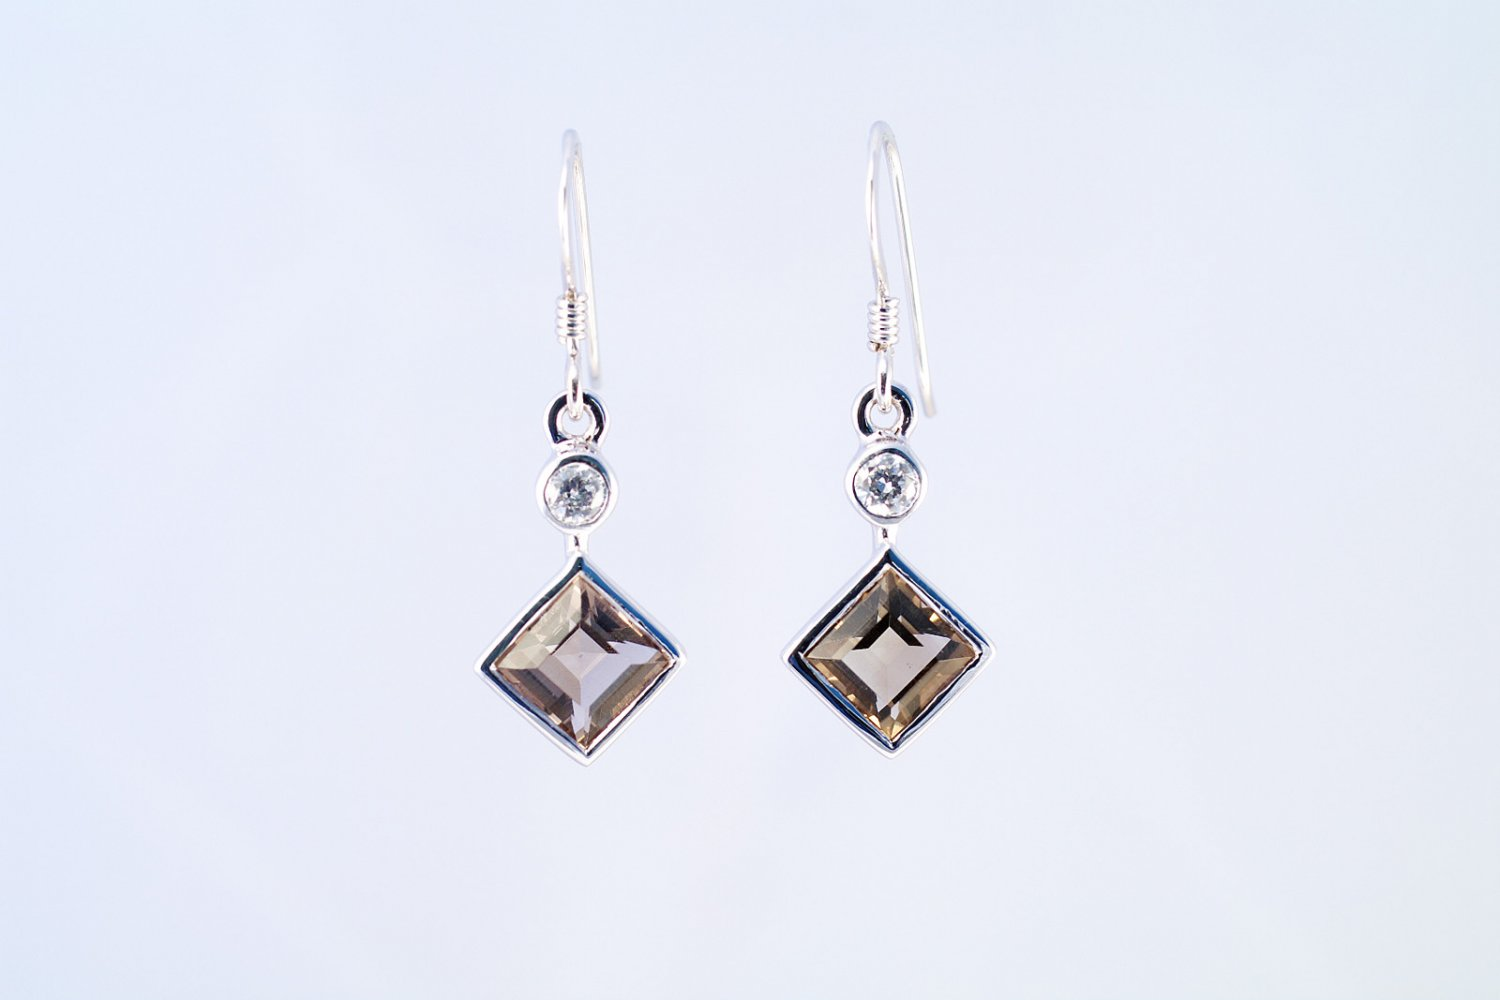 Smoky Quartz earrings 925 sterling silver W/G plated